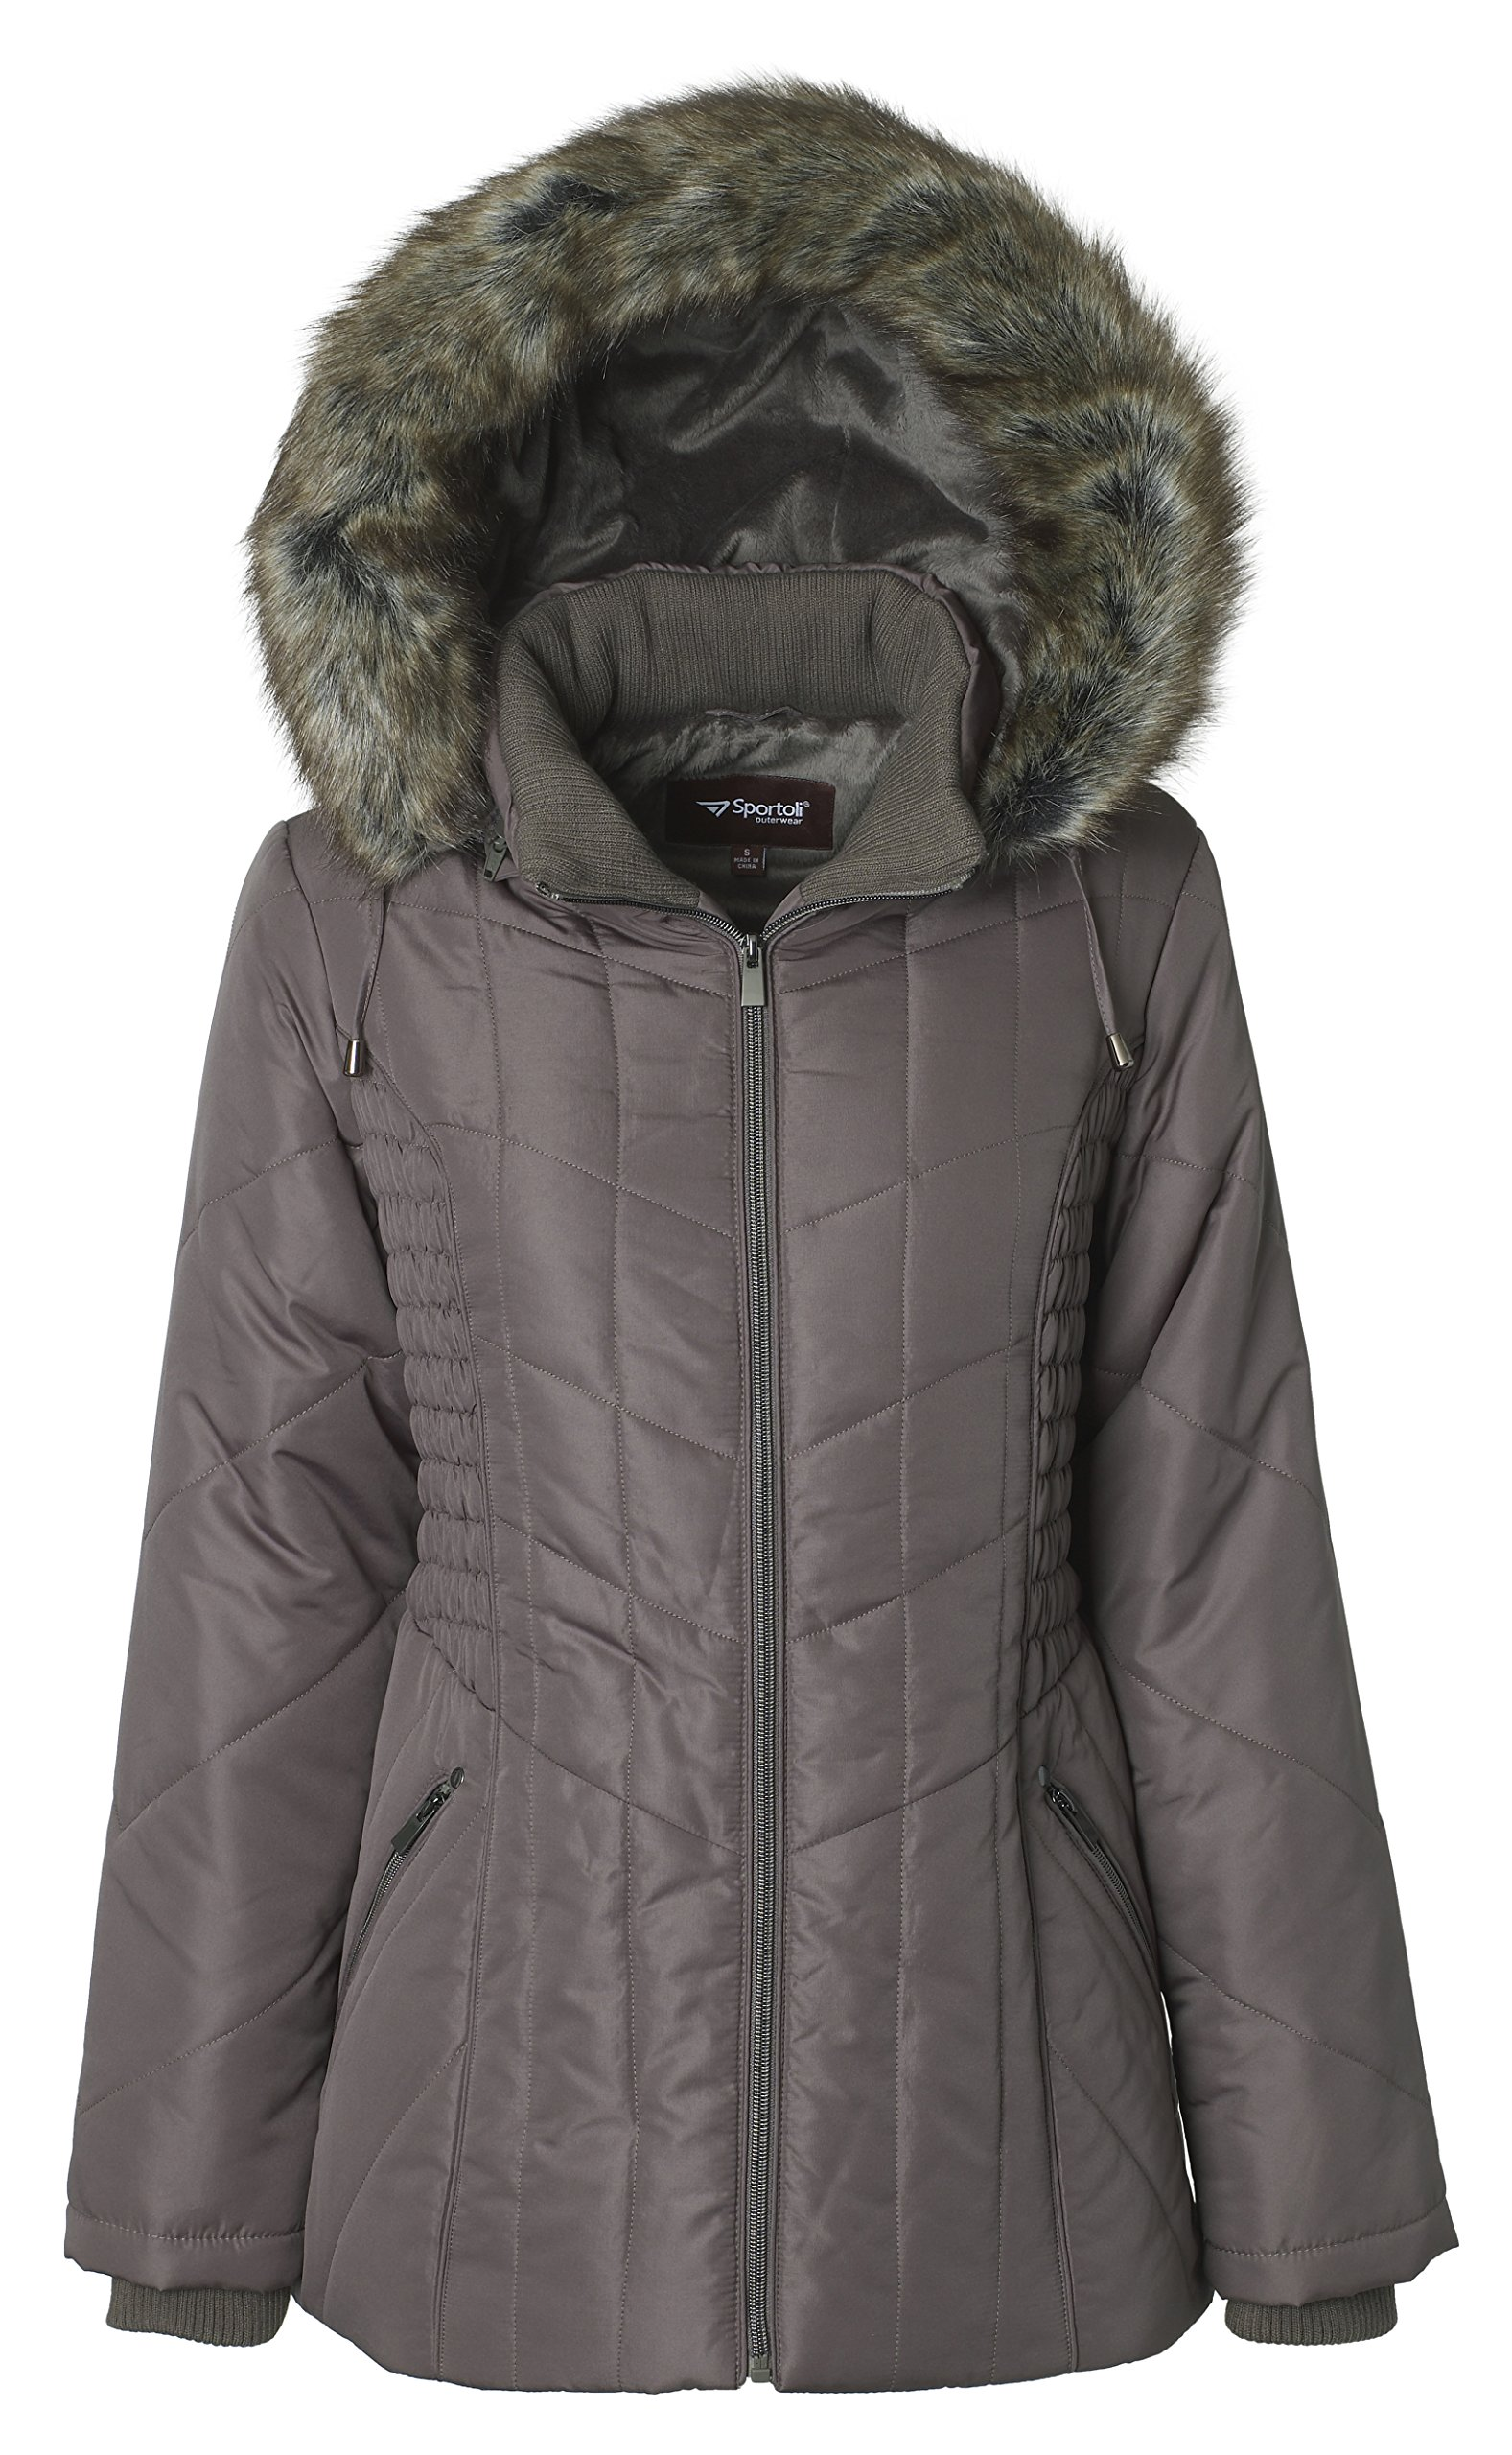 Sportoli Women's Midlength Ruched Detail Plush Lined Puffer Coat with Zip-Off Detacheable Fur Trim Hood - Fog with Polished GunMetal (2X) by Sportoli (Image #1)